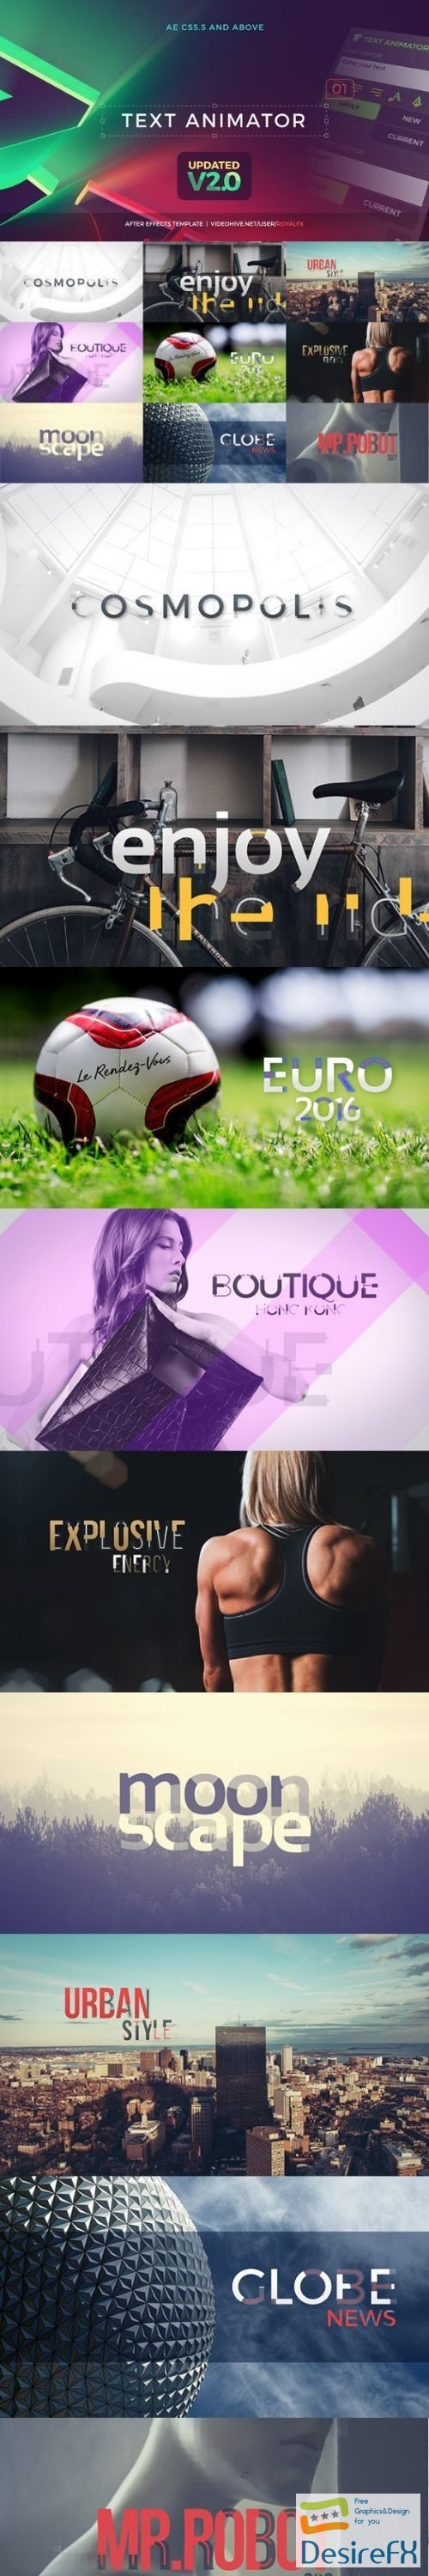 after-effects-projects - Videohive Creative Titles V2.1 16491525